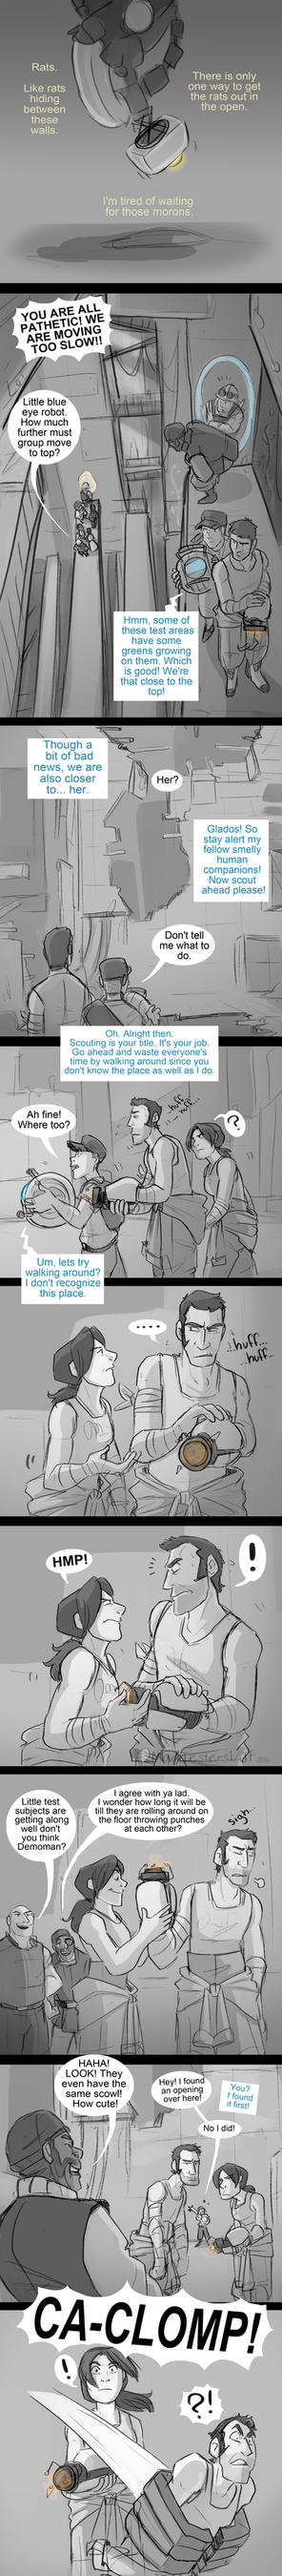 TF2-Long Lost Pg. 78 by MadJesters1